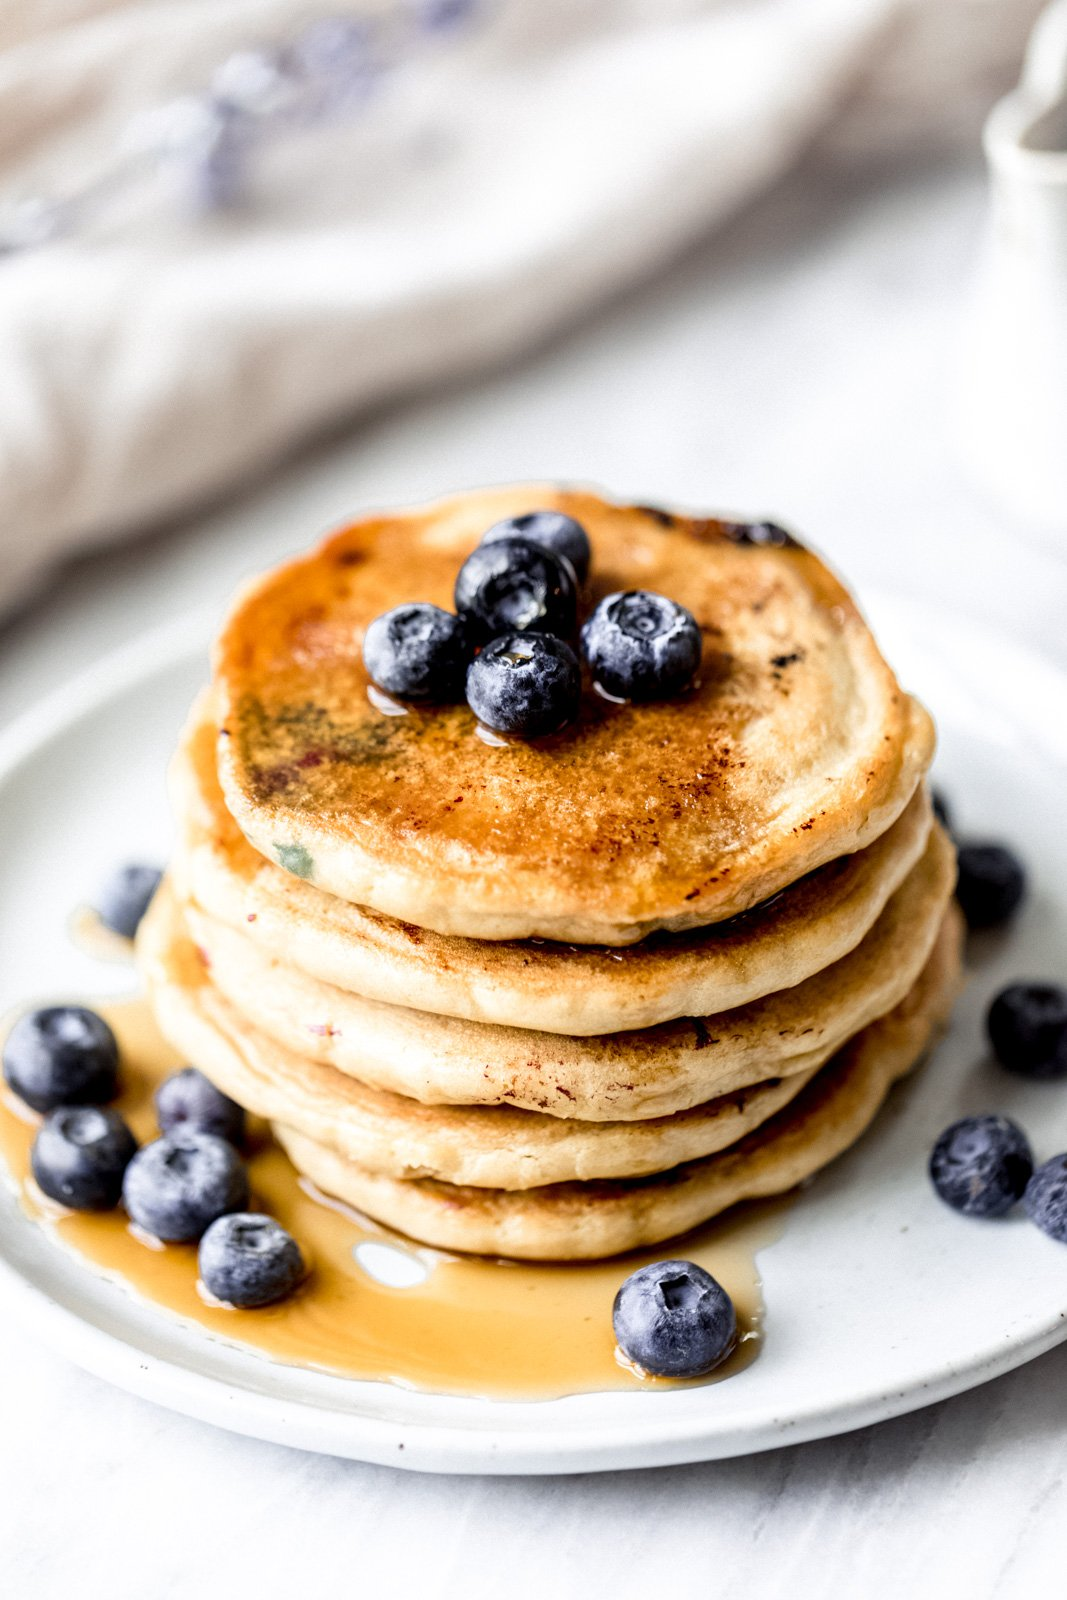 almond flour pancakes topped with blueberries on a plate